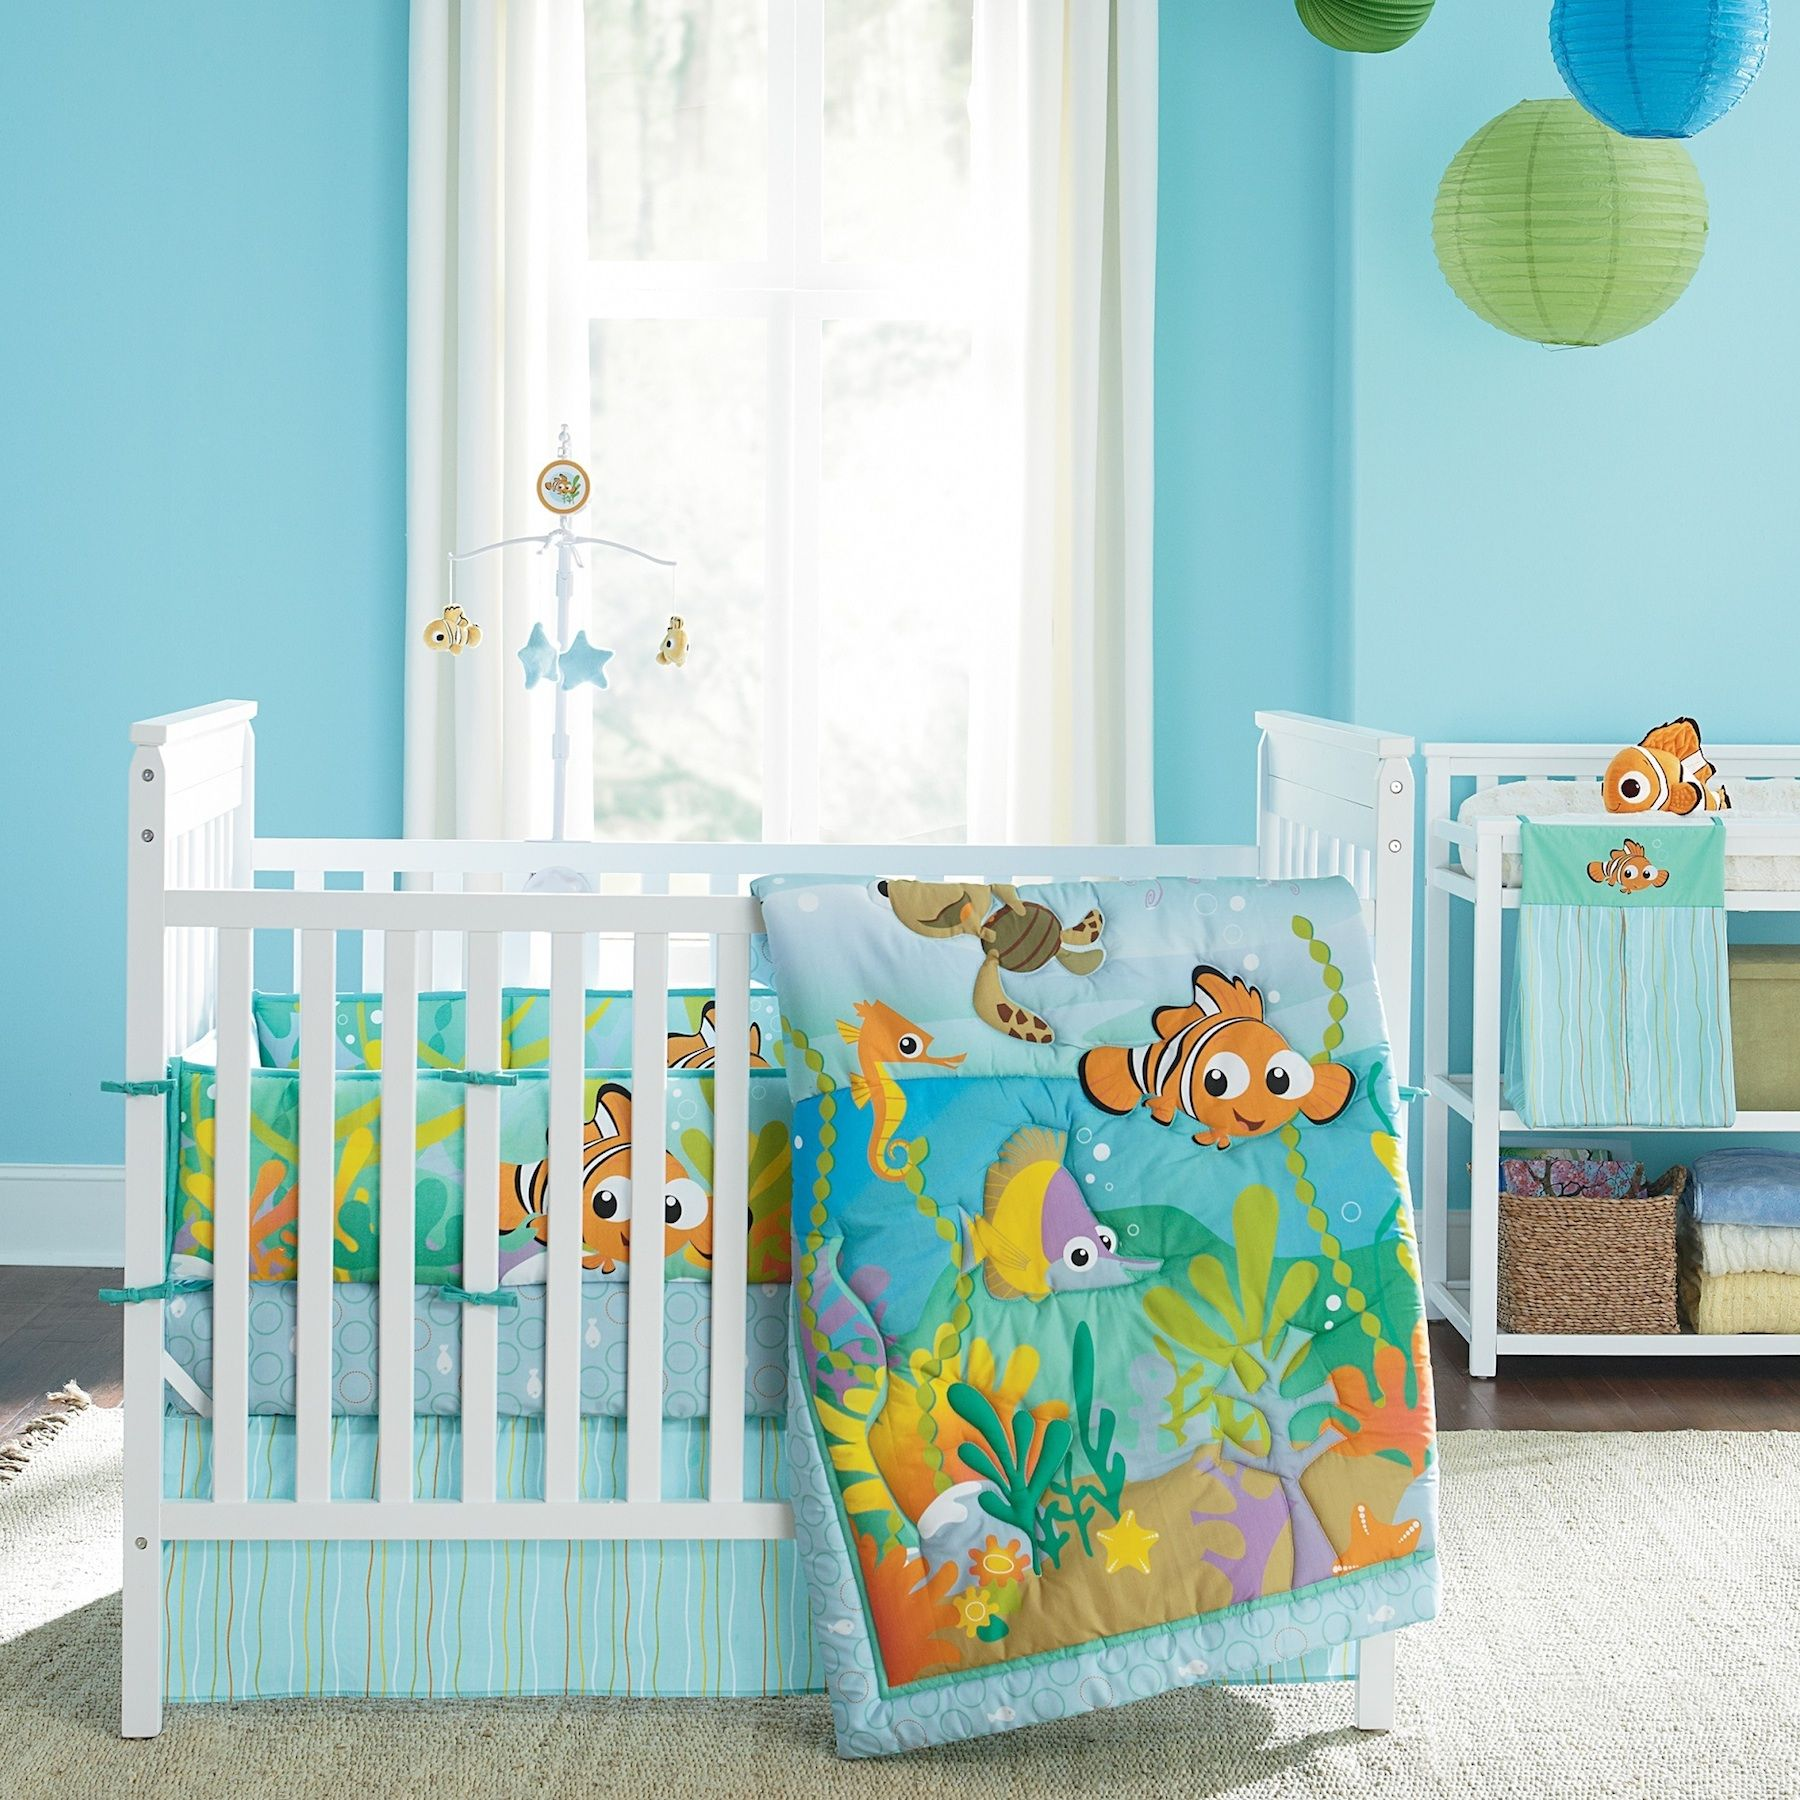 Crib bumpers babies r us - Disney Baby Finding Nemo Reef 4 Piece Crib Bedding Set